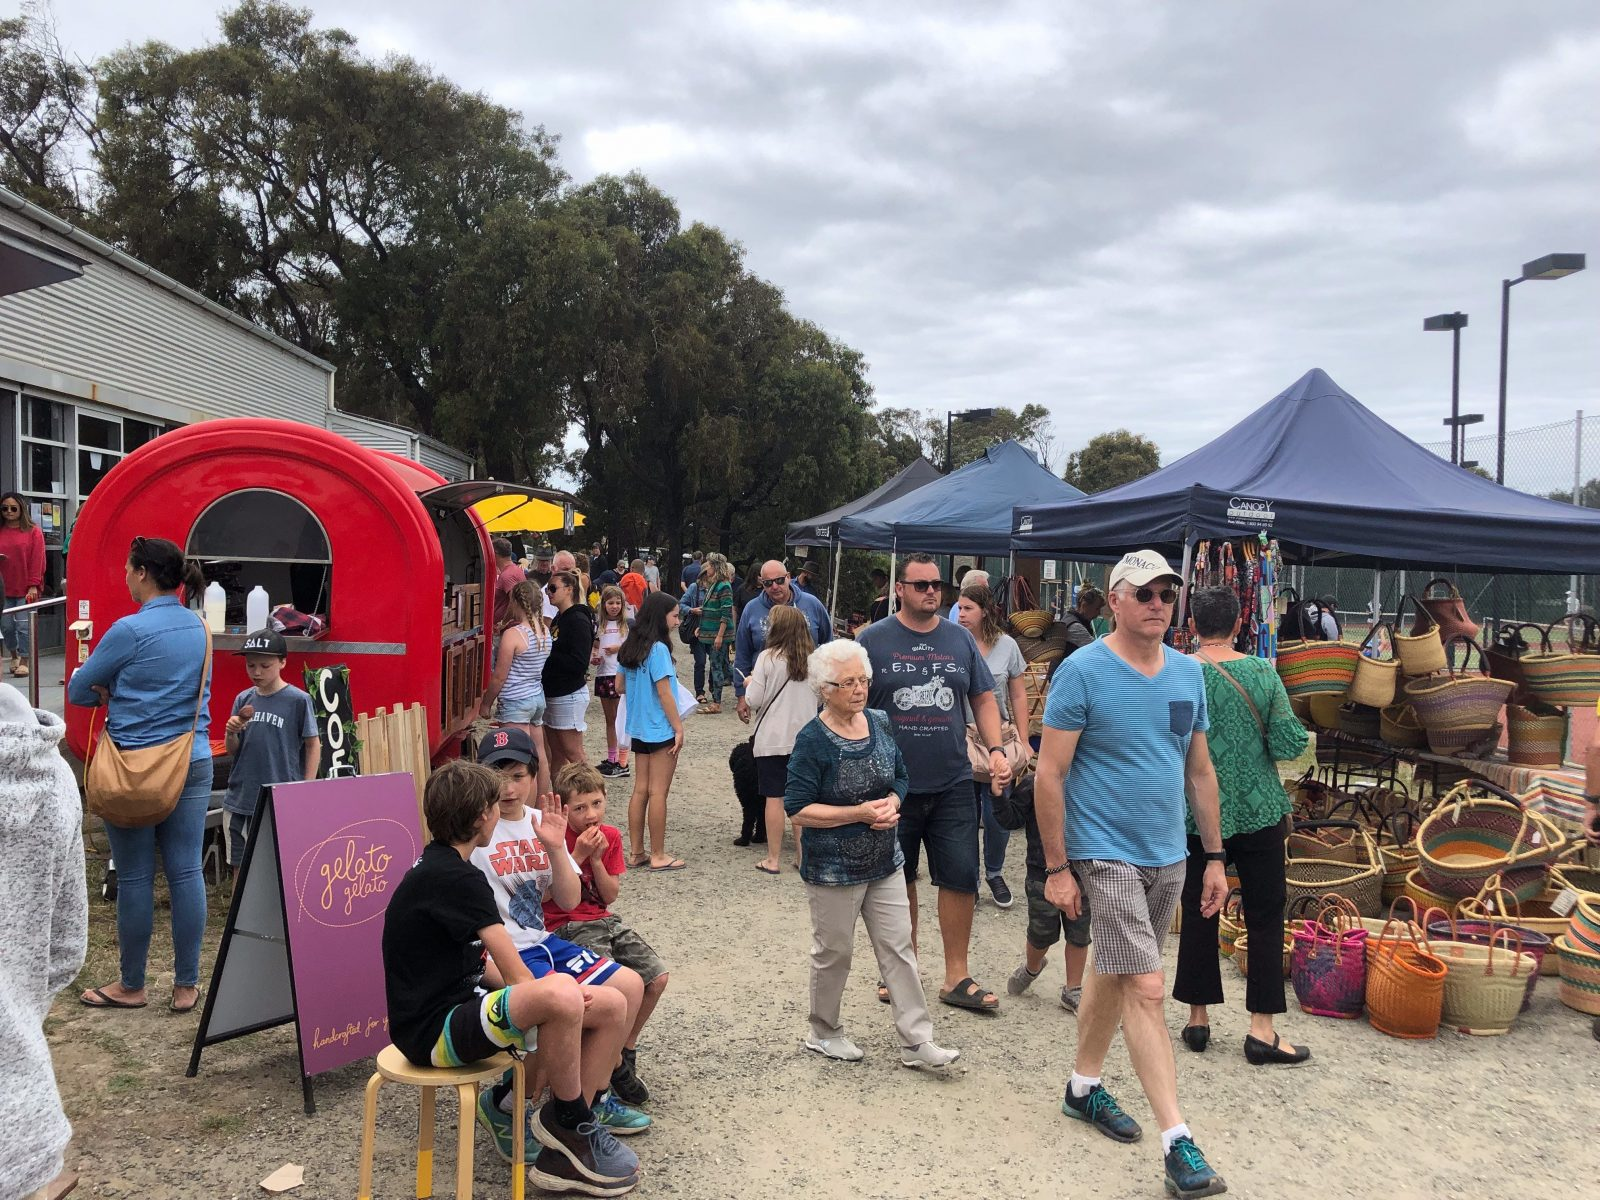 Hot food, cool vibes and local, homemade shopping at popular Aireys Inlet Market on Great Ocean Road